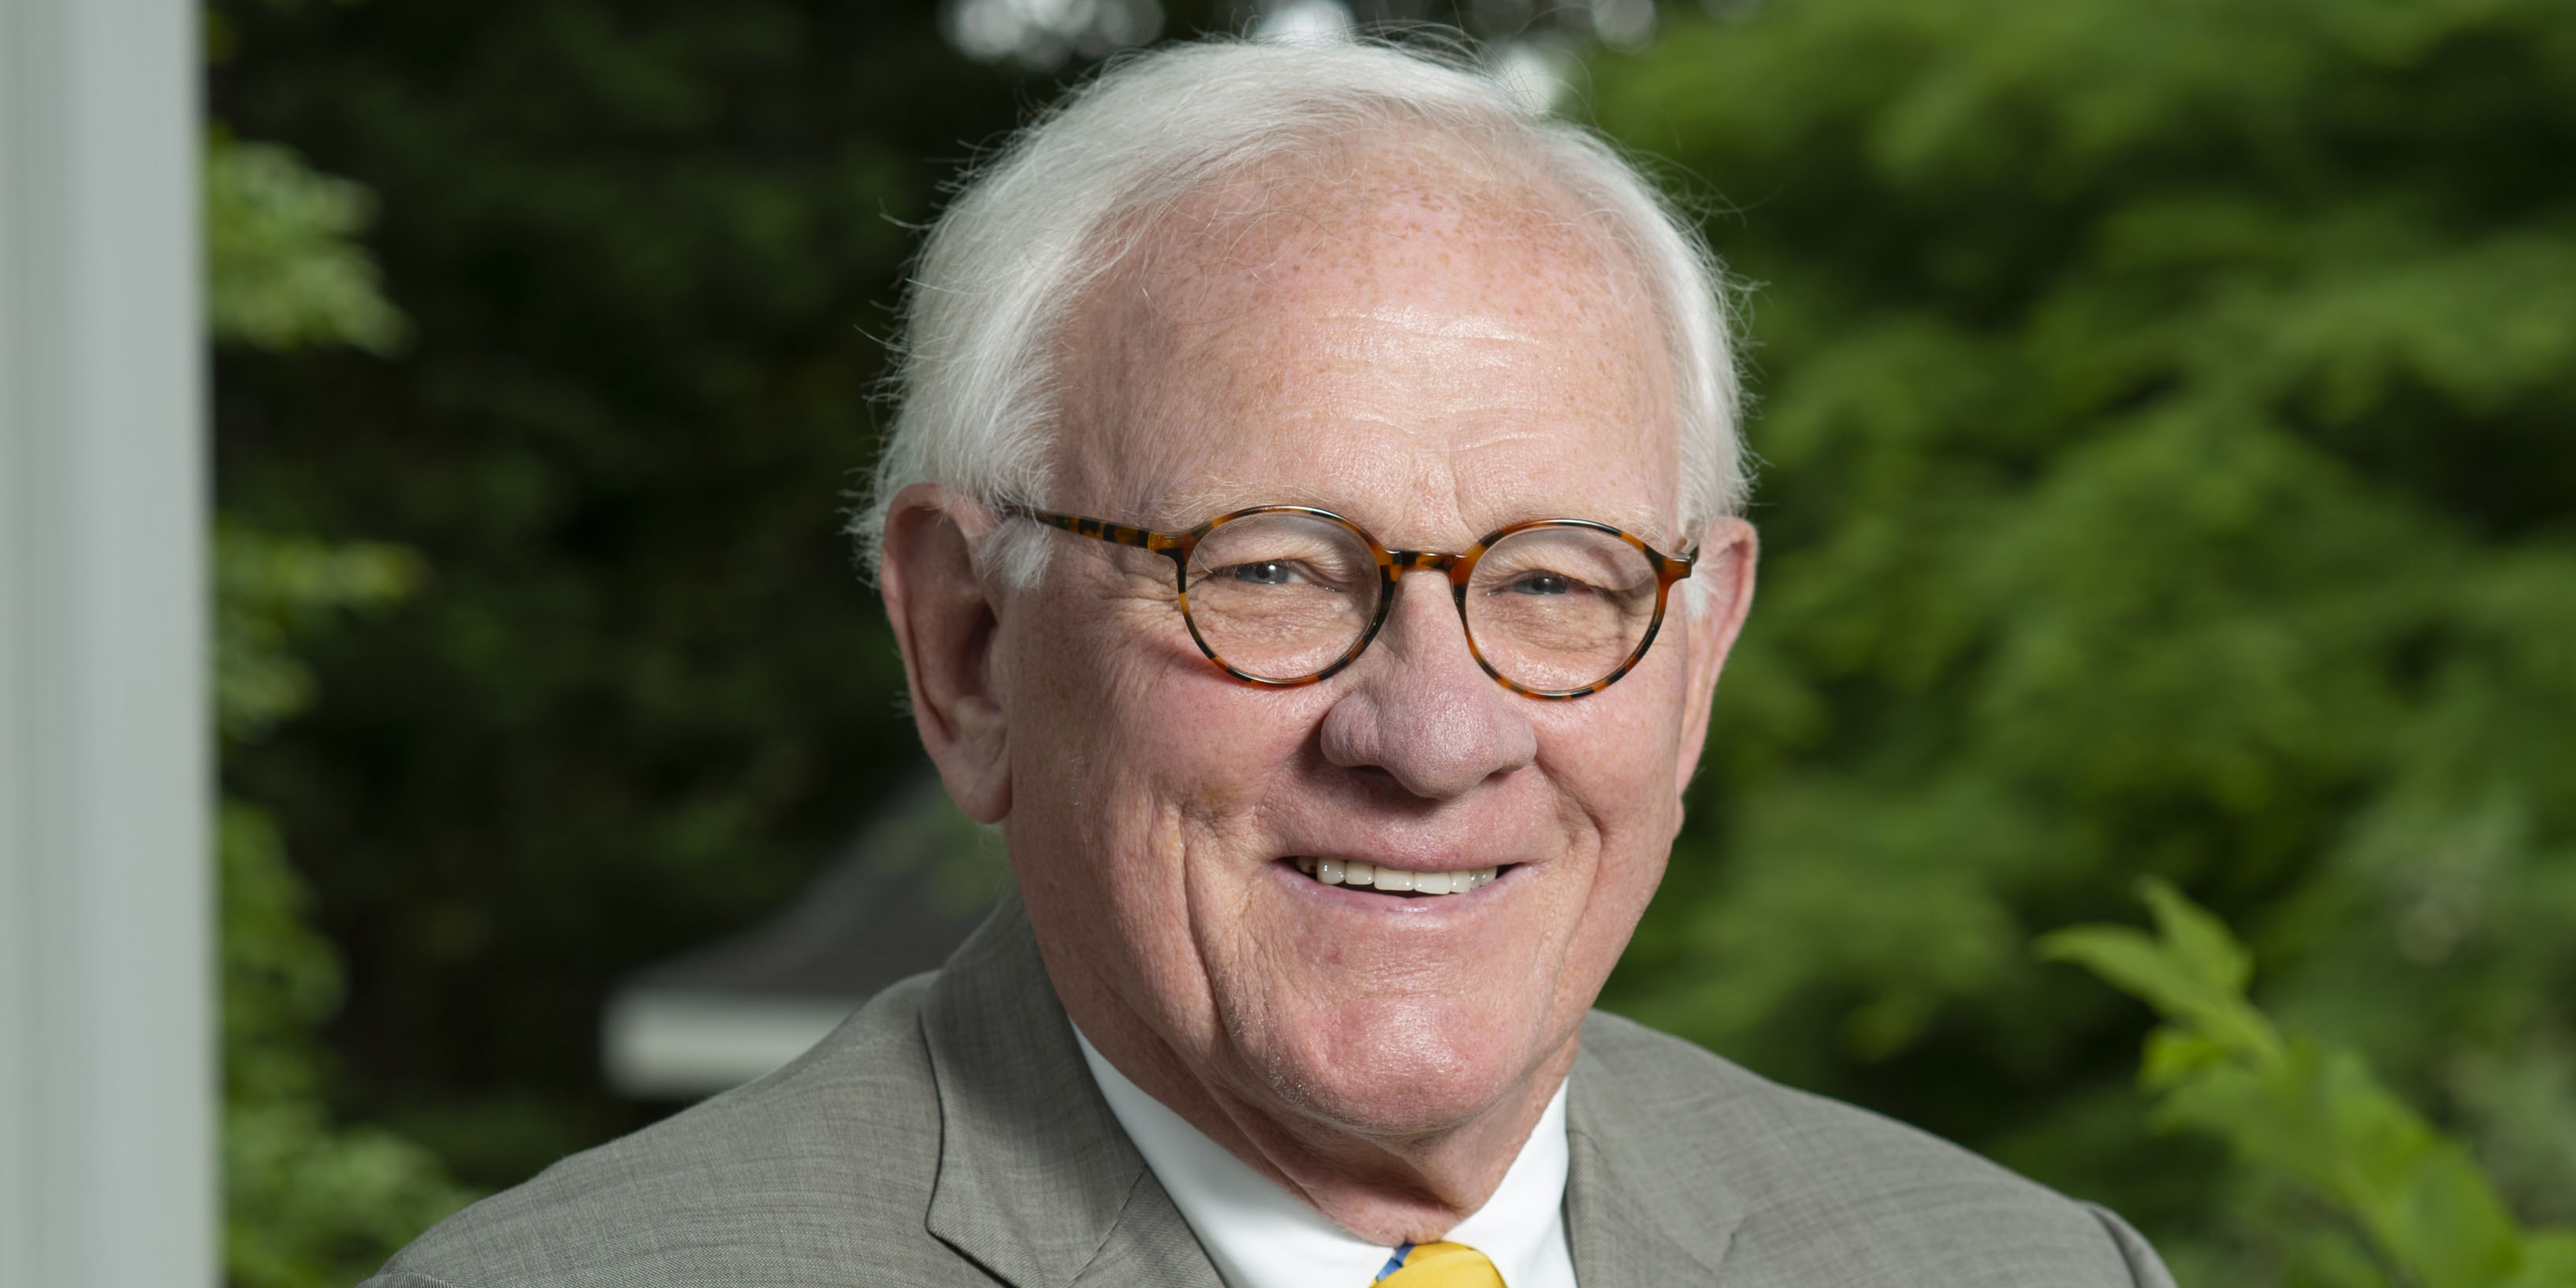 'Where I belong' – John Harrill, MD, serves in many ways for over four decades